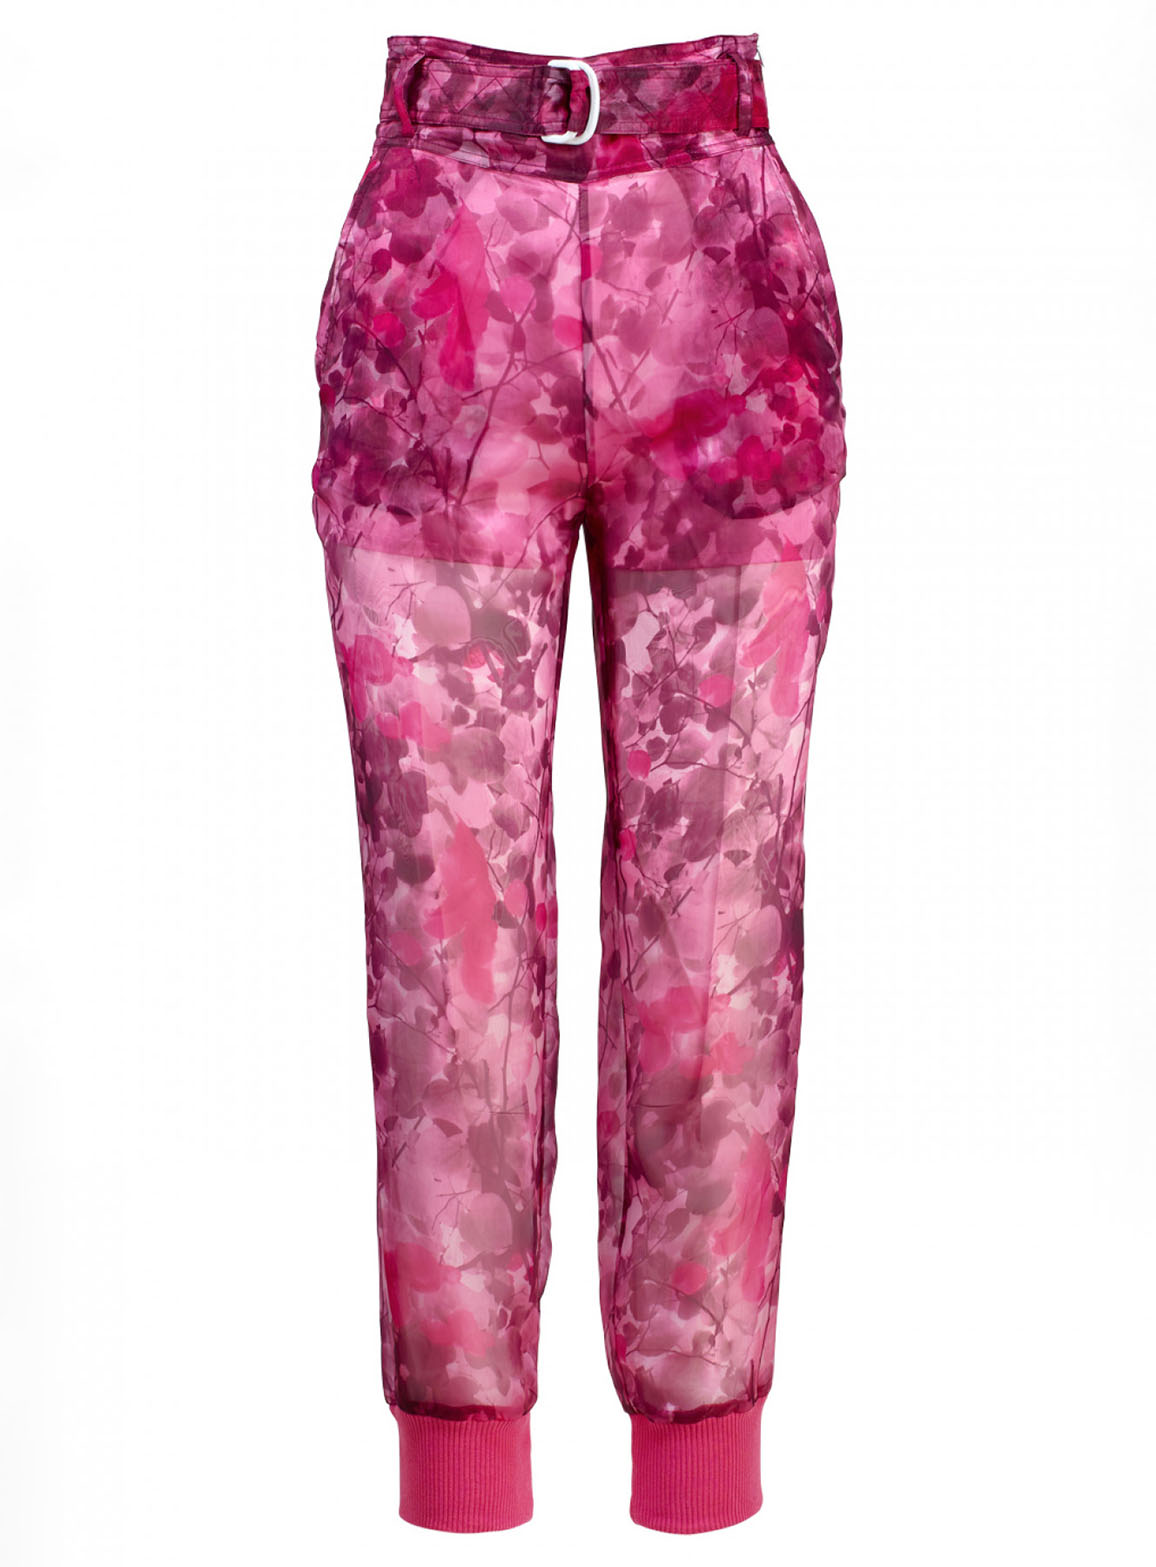 Blossom camouflage pants